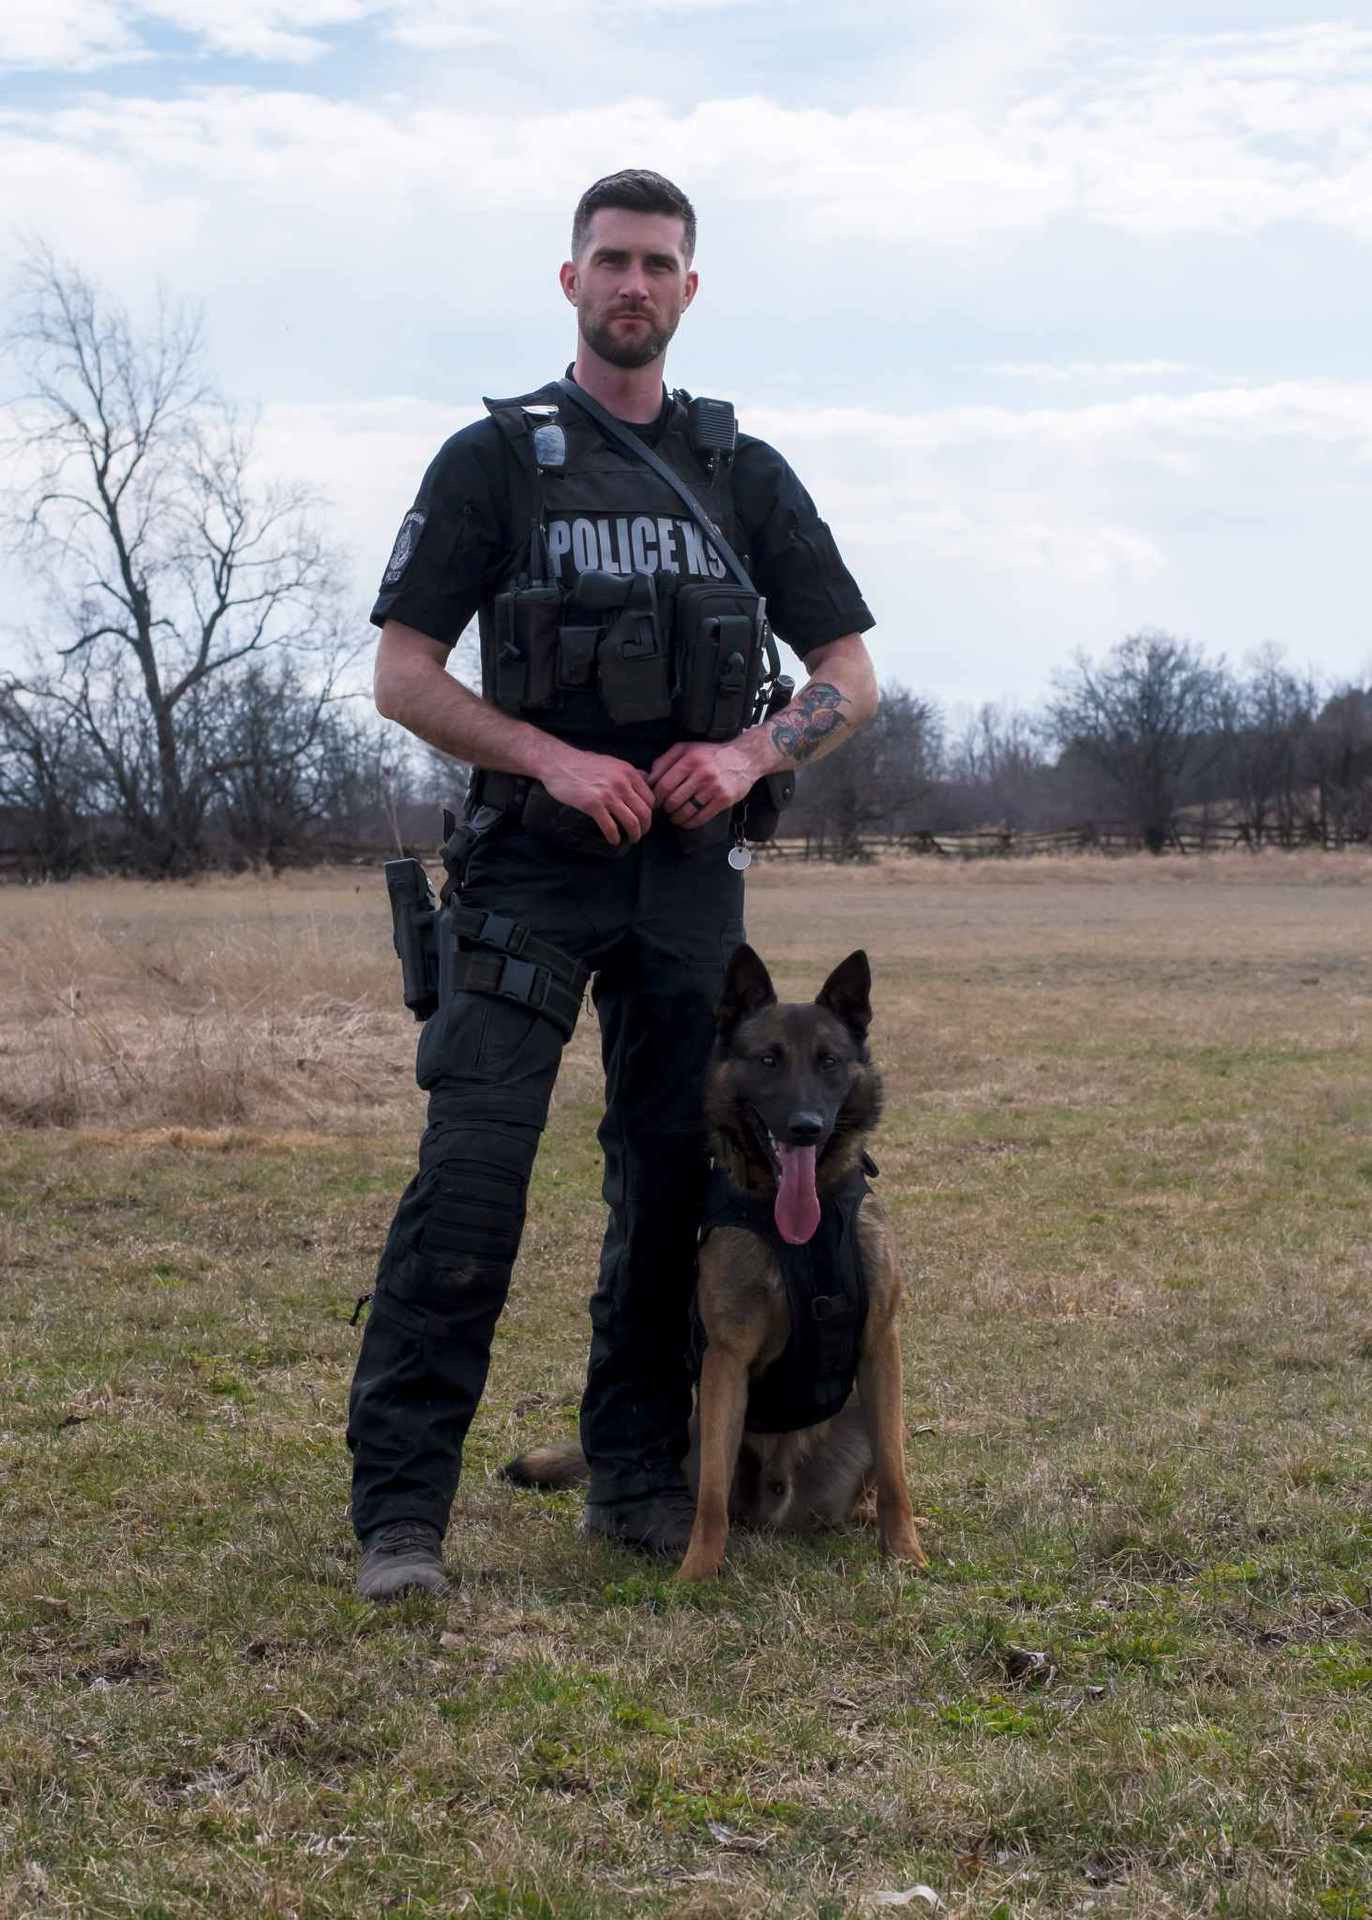 A police officer stands beside a seated dog from the K-9 Units